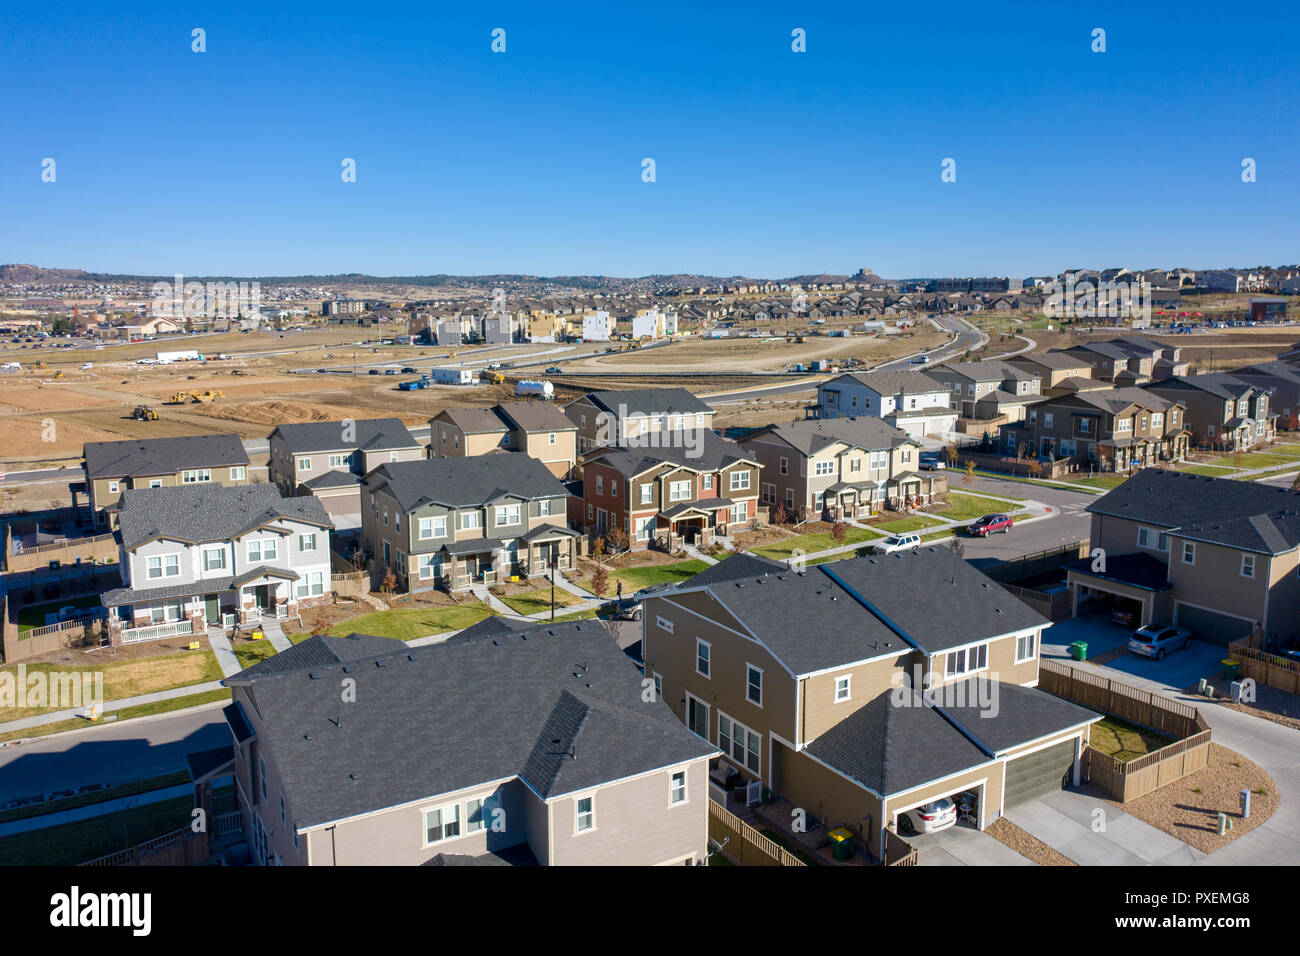 Urban sprawl homes with new construction in the background - Stock Image